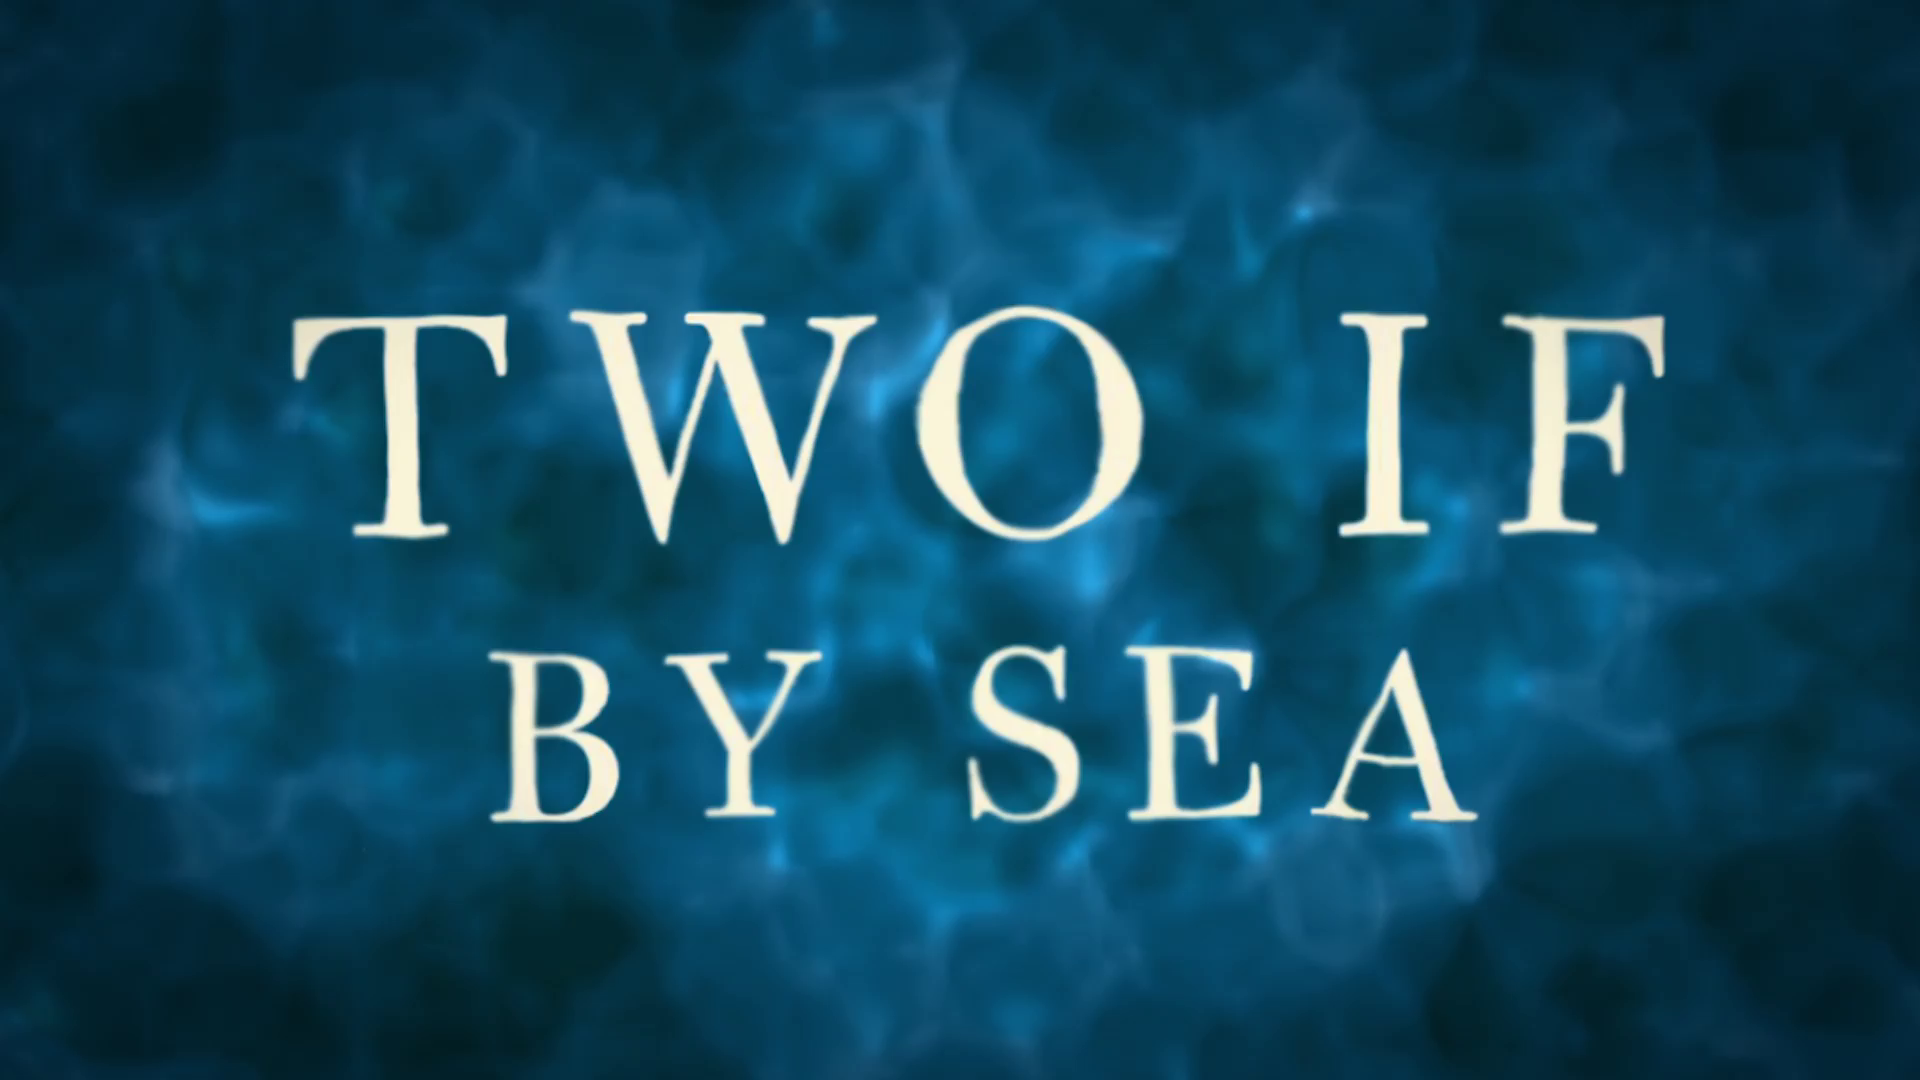 'Two If By Sea' by Jacquelyn Mitchard